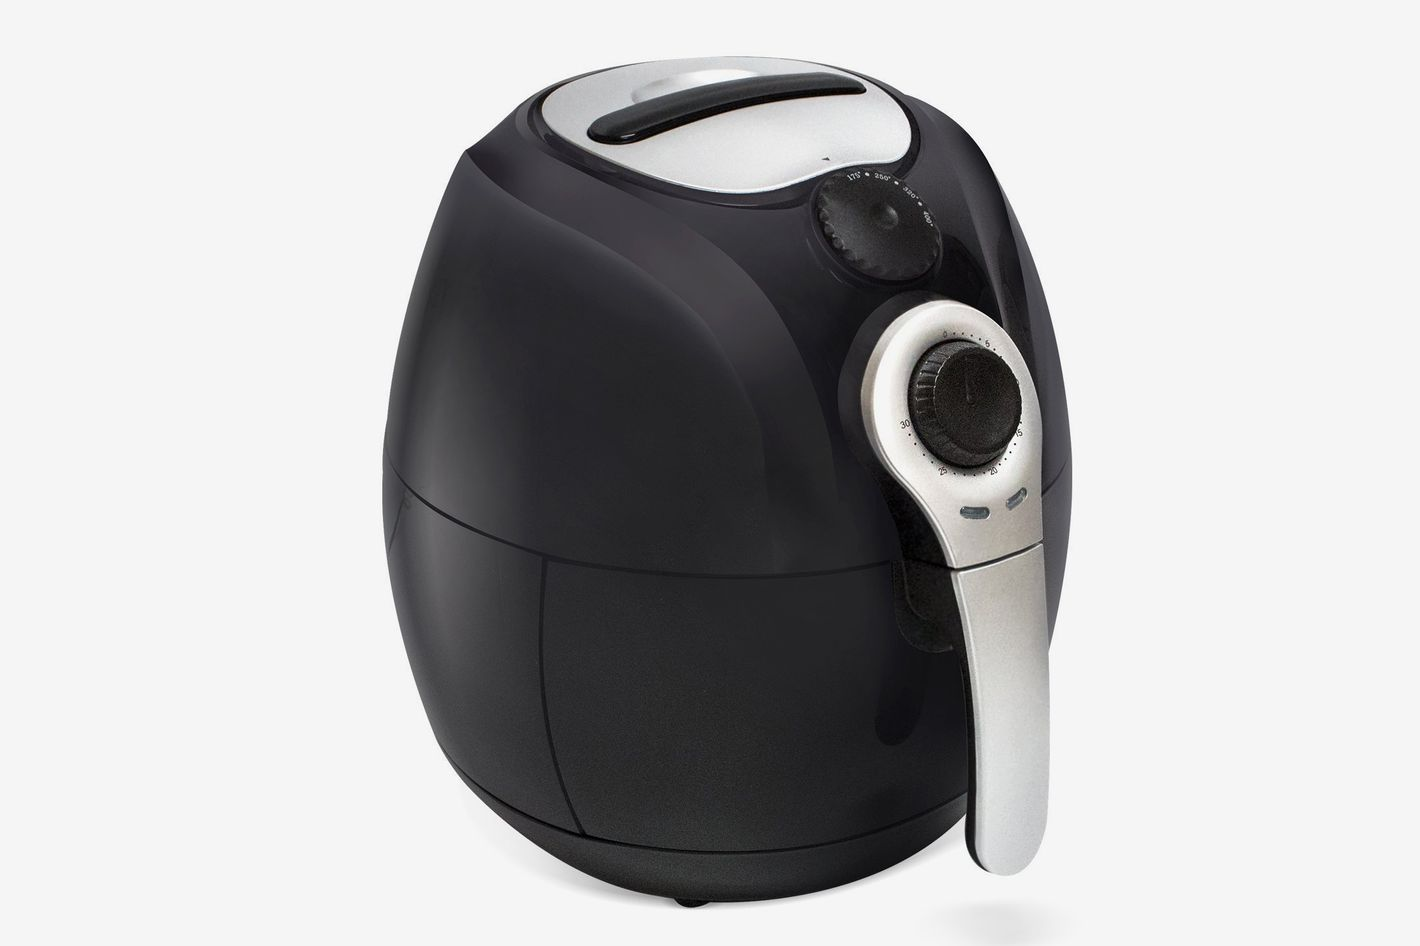 black simple chef air fryer under $50